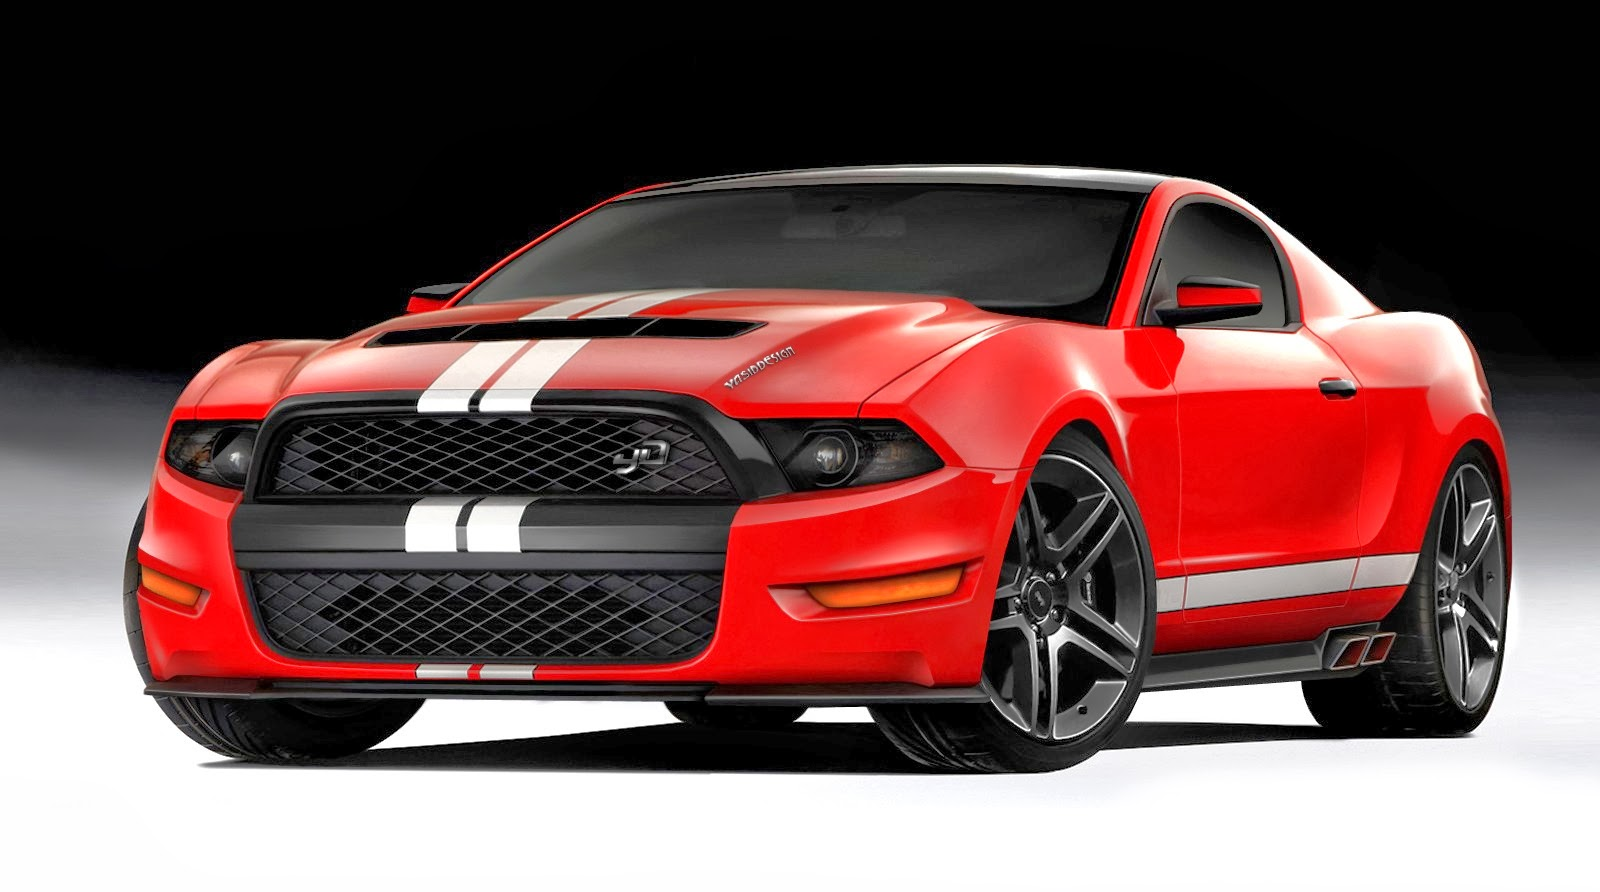 Top All Wallpapers 2014 Cars Wallpapers 1600x892